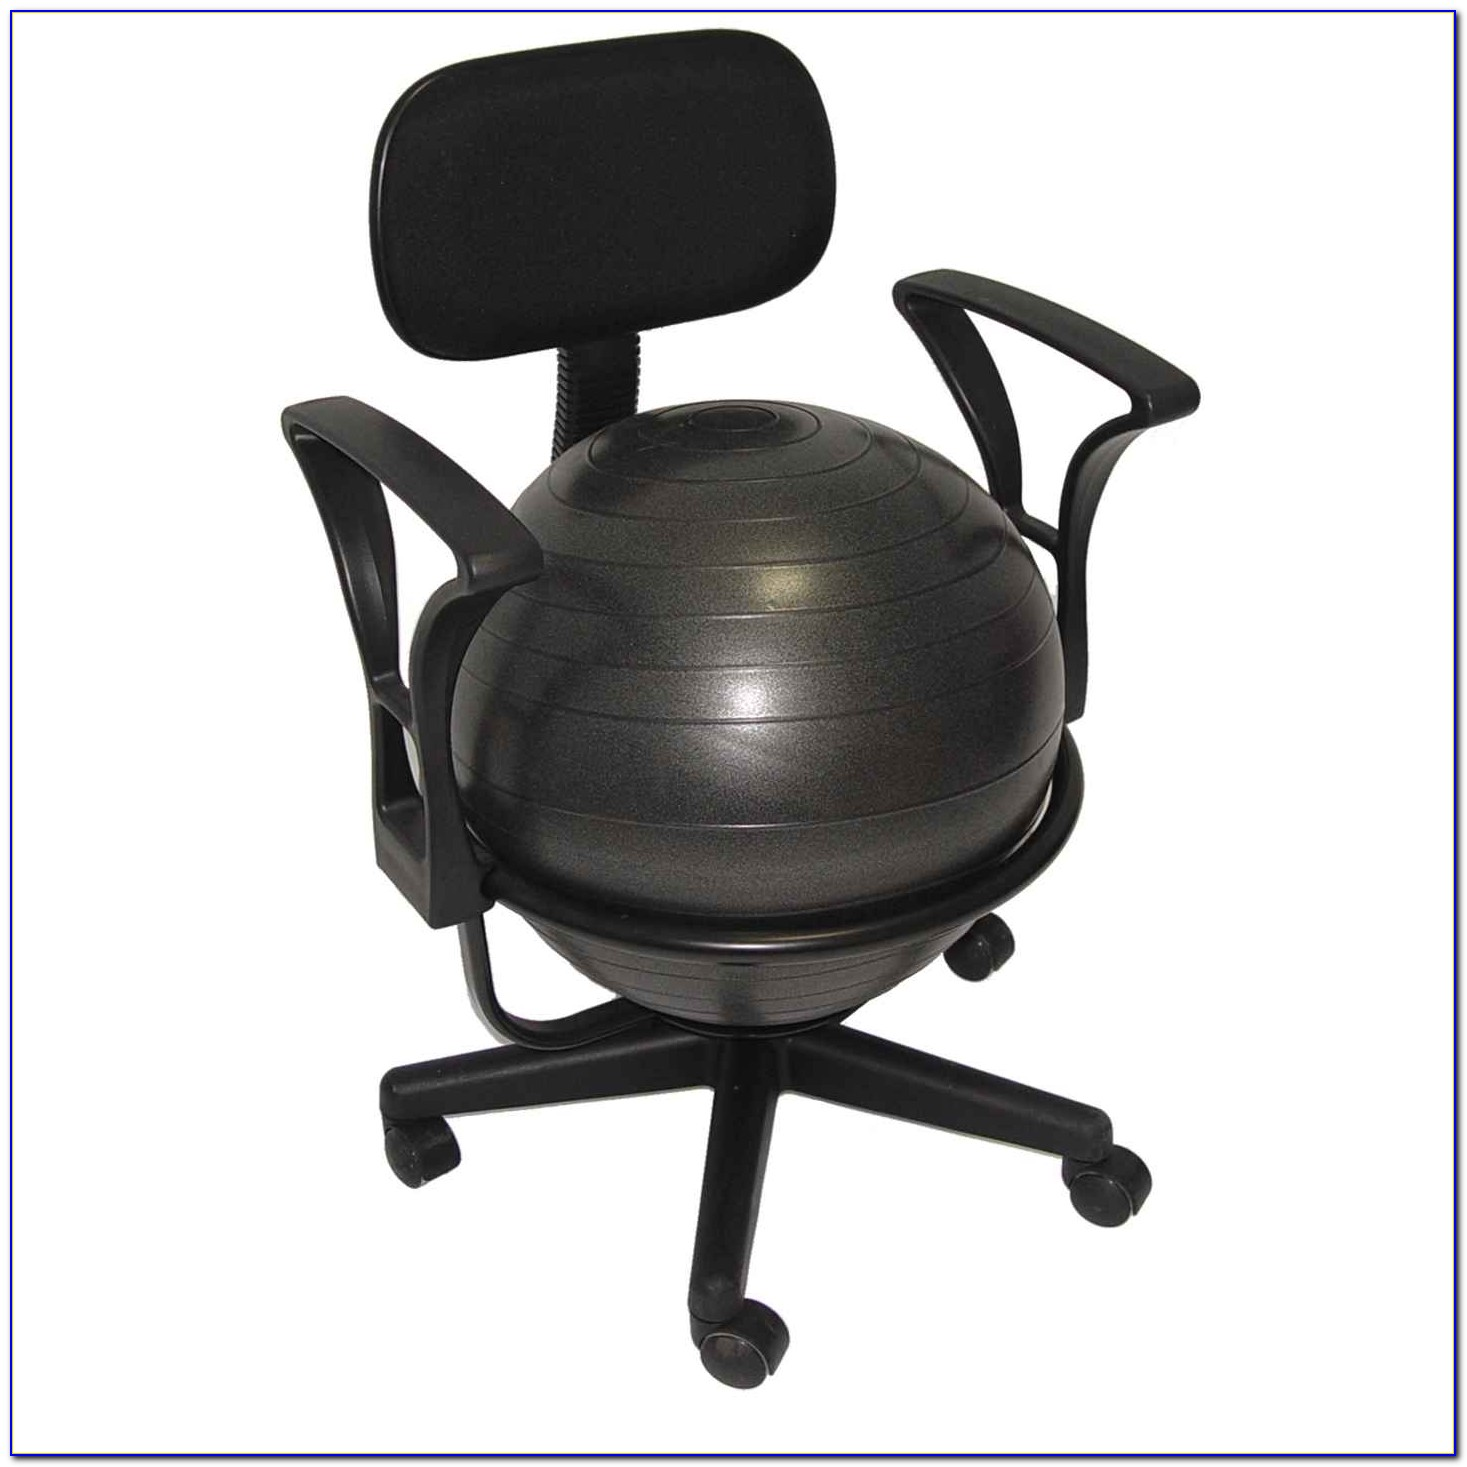 Ball Chair For Desk